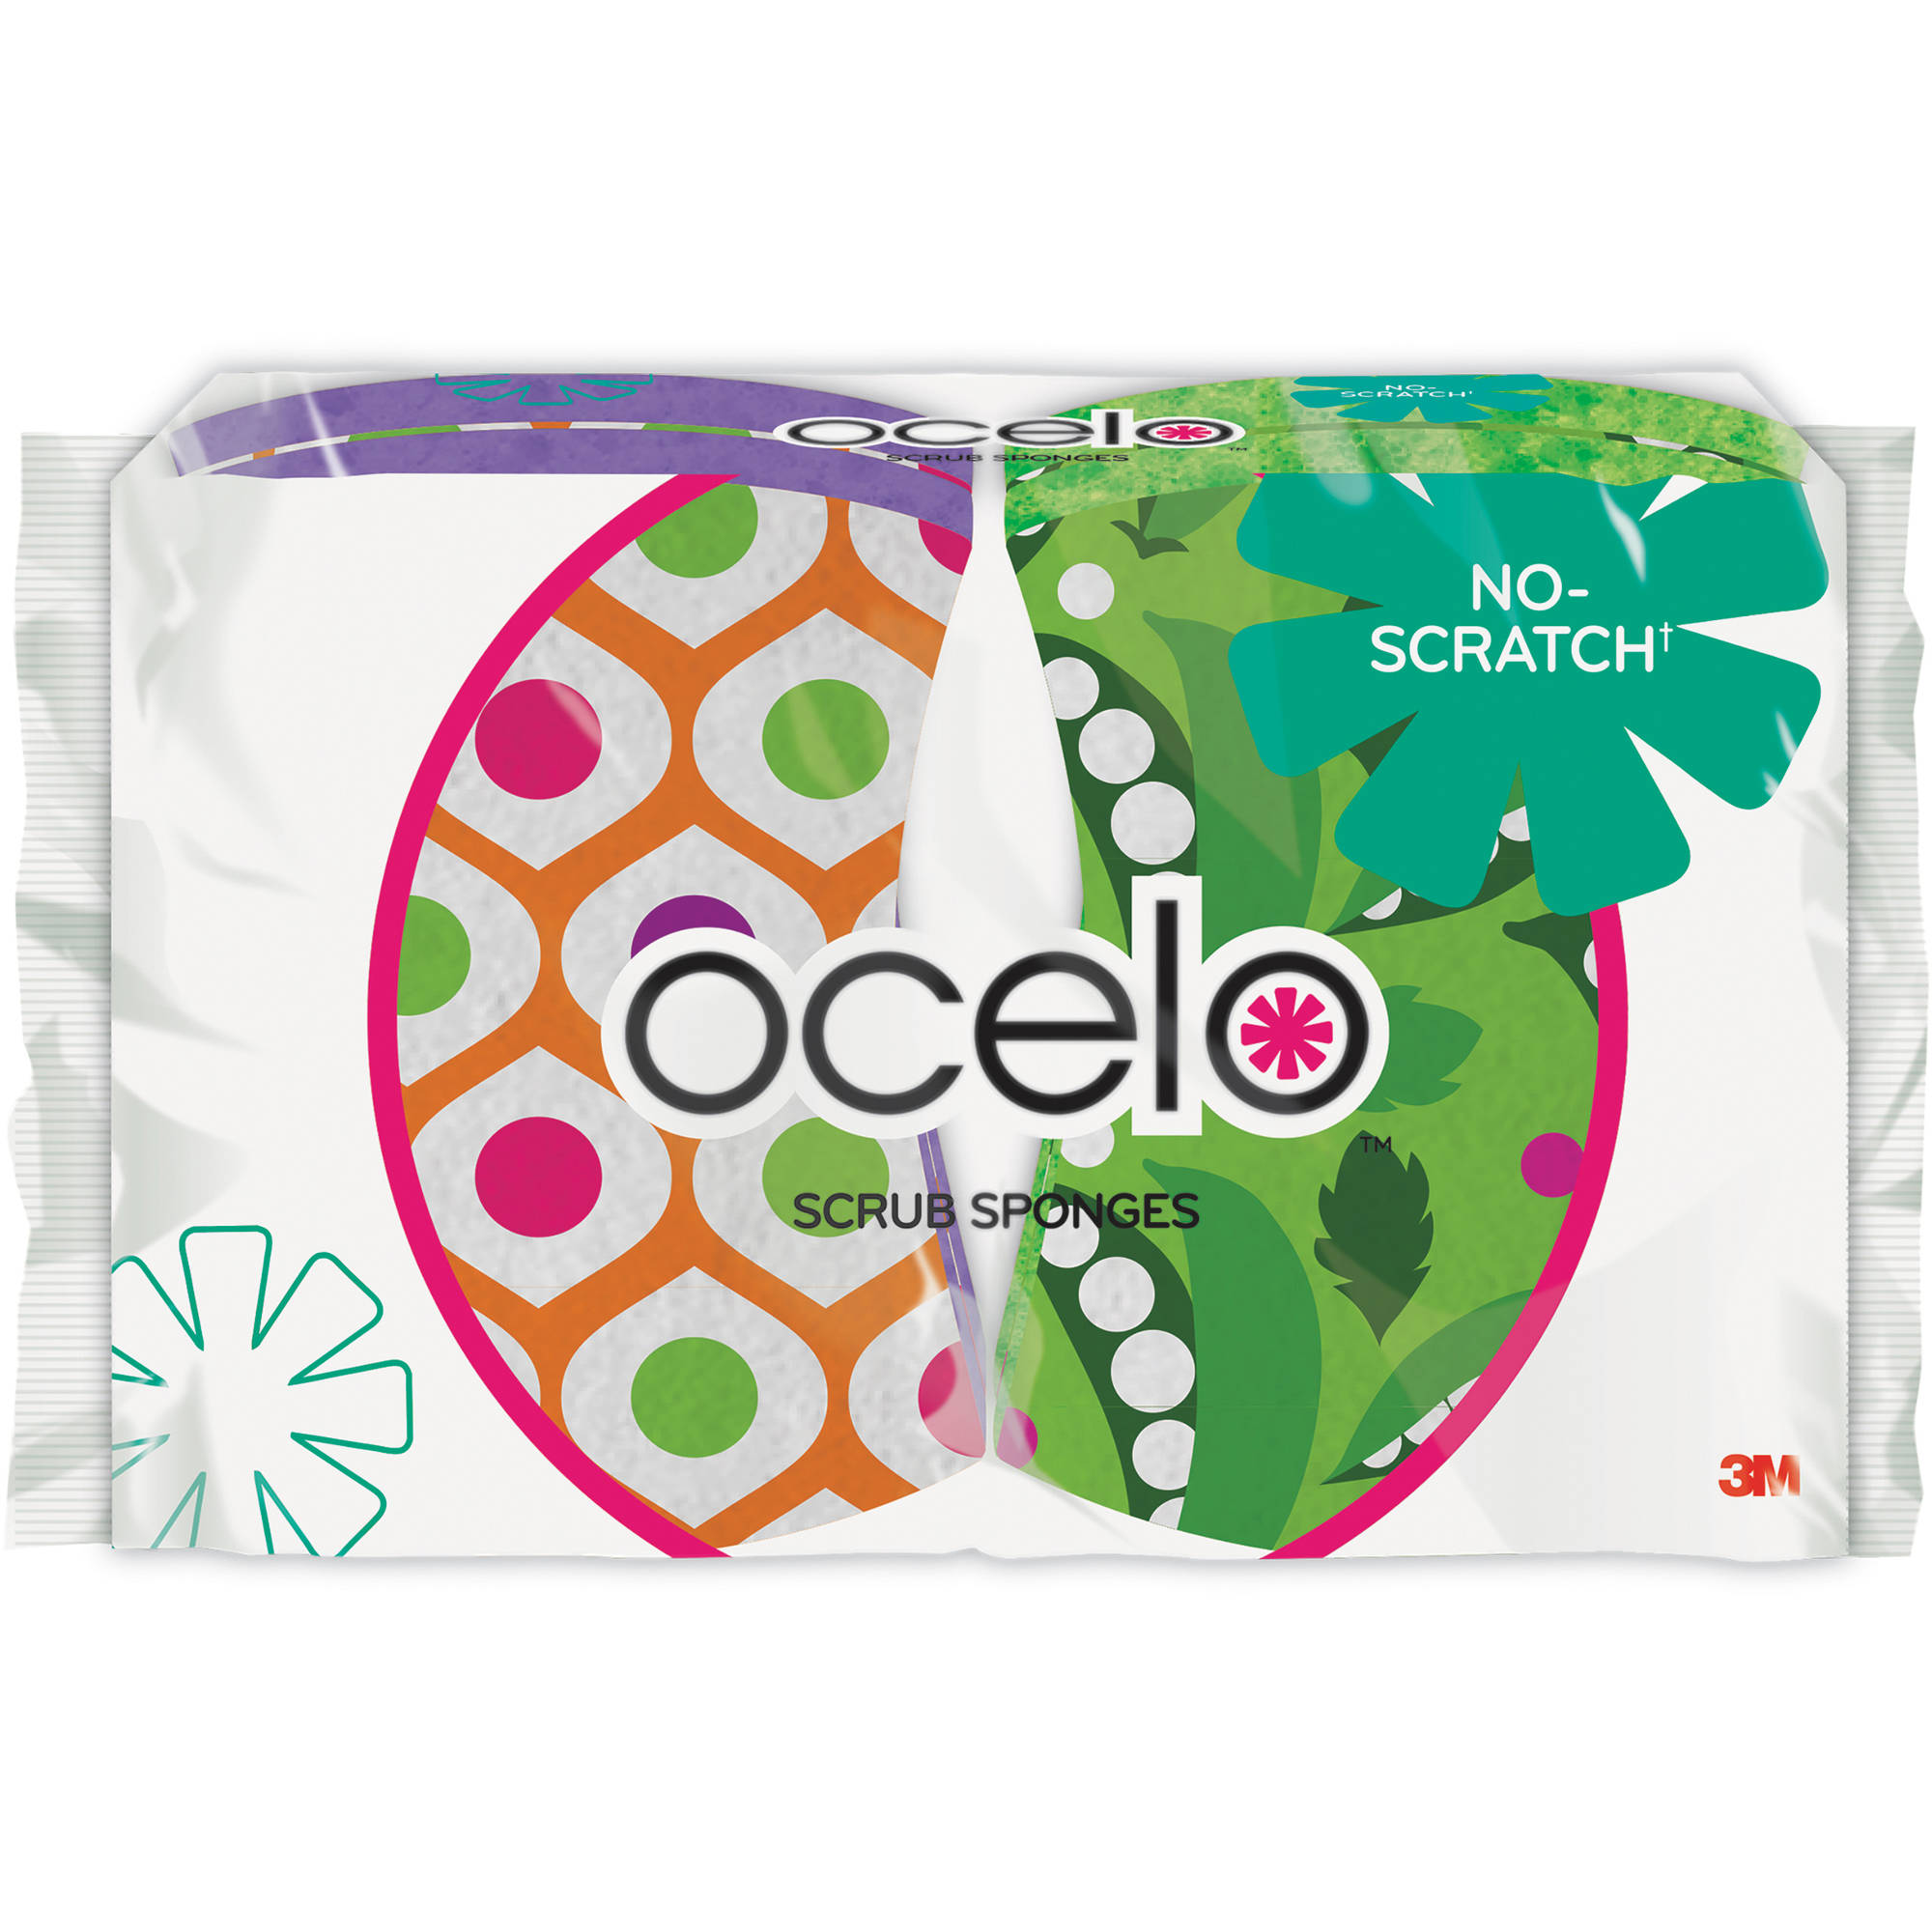 ocelo No-Scratch Scrub Sponge, 4 pack